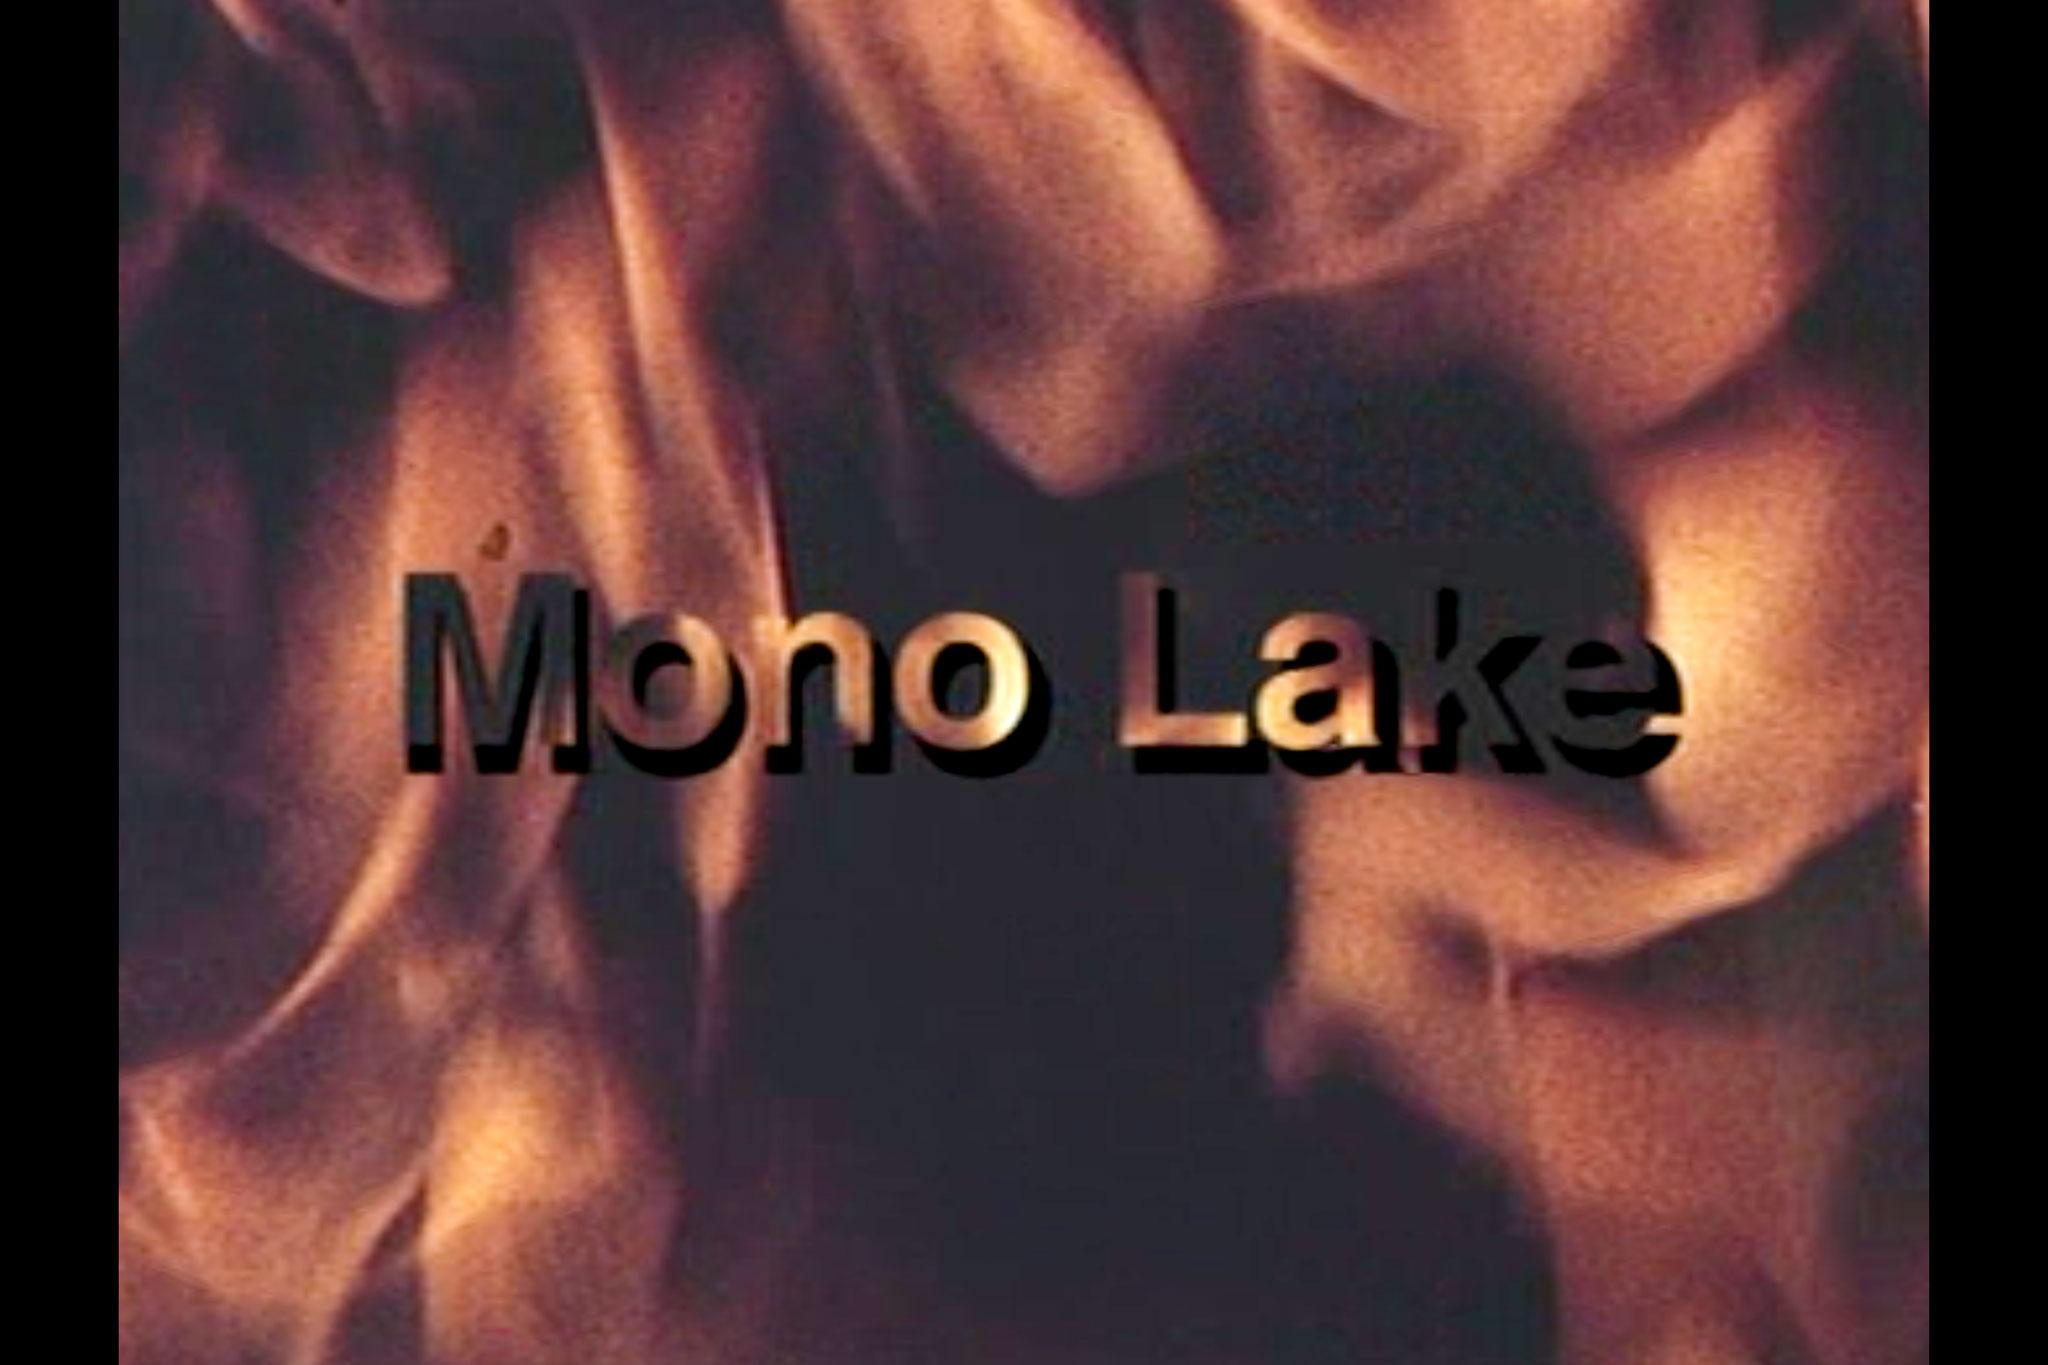 A title text for the film Mono Lake over a flaming background